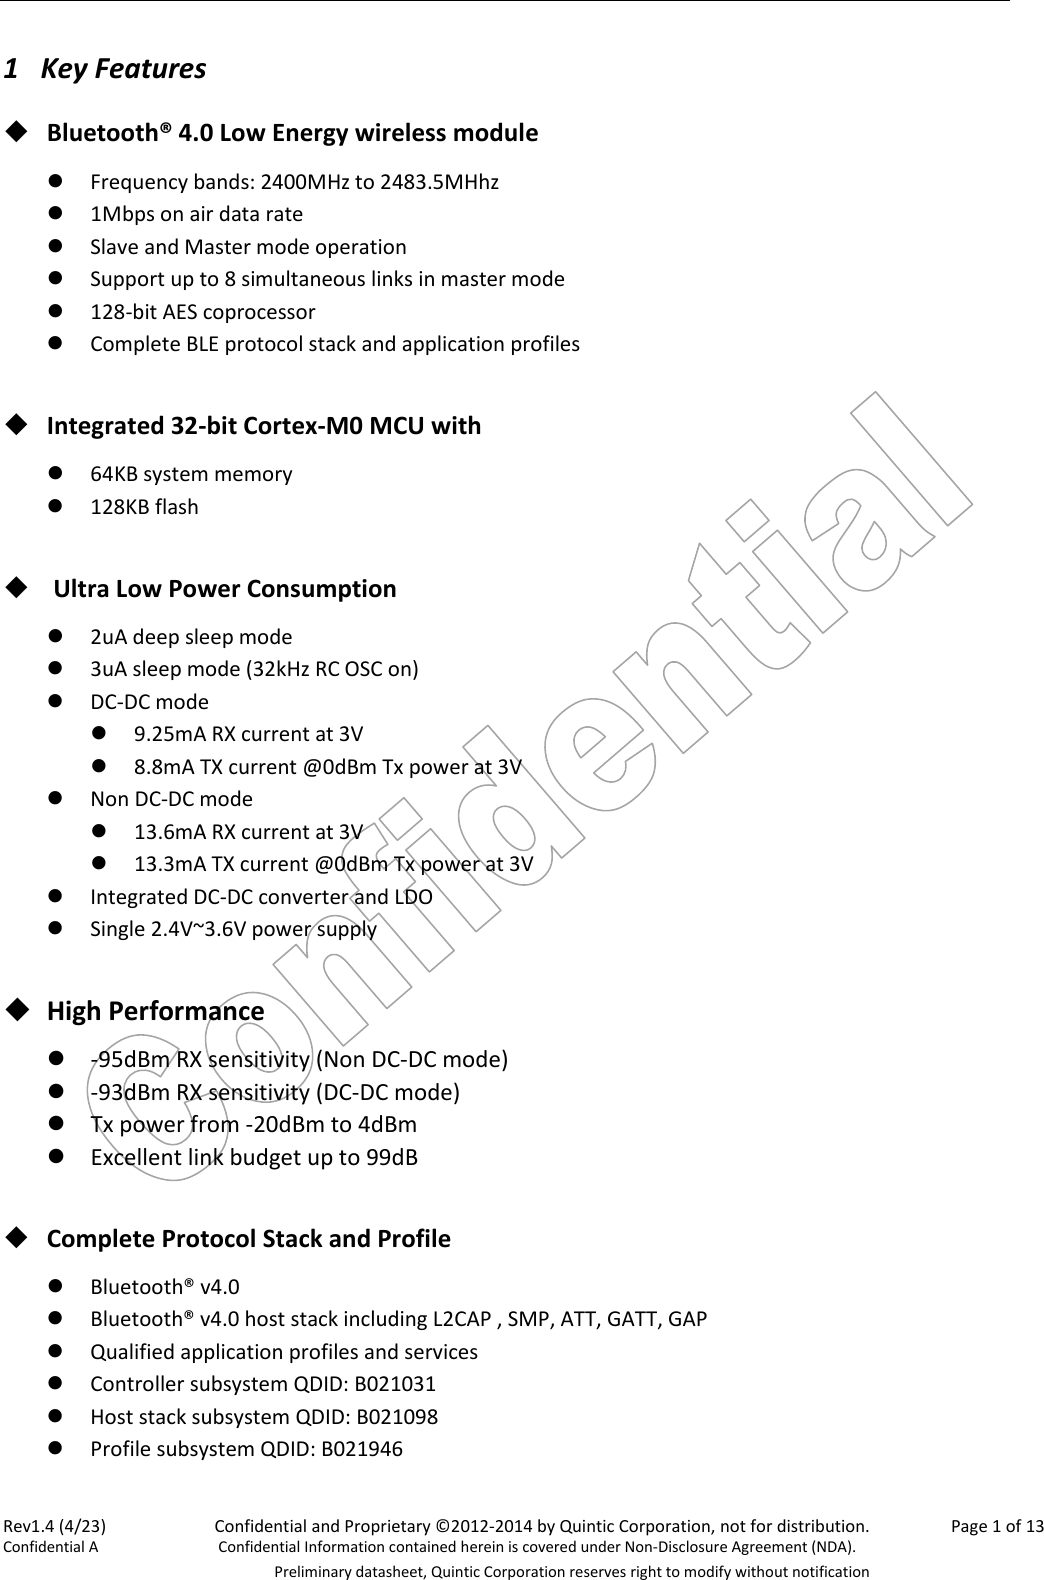 Quintic 9321 1 Bluetooth 40 Low Energy Module User Manual Format Of